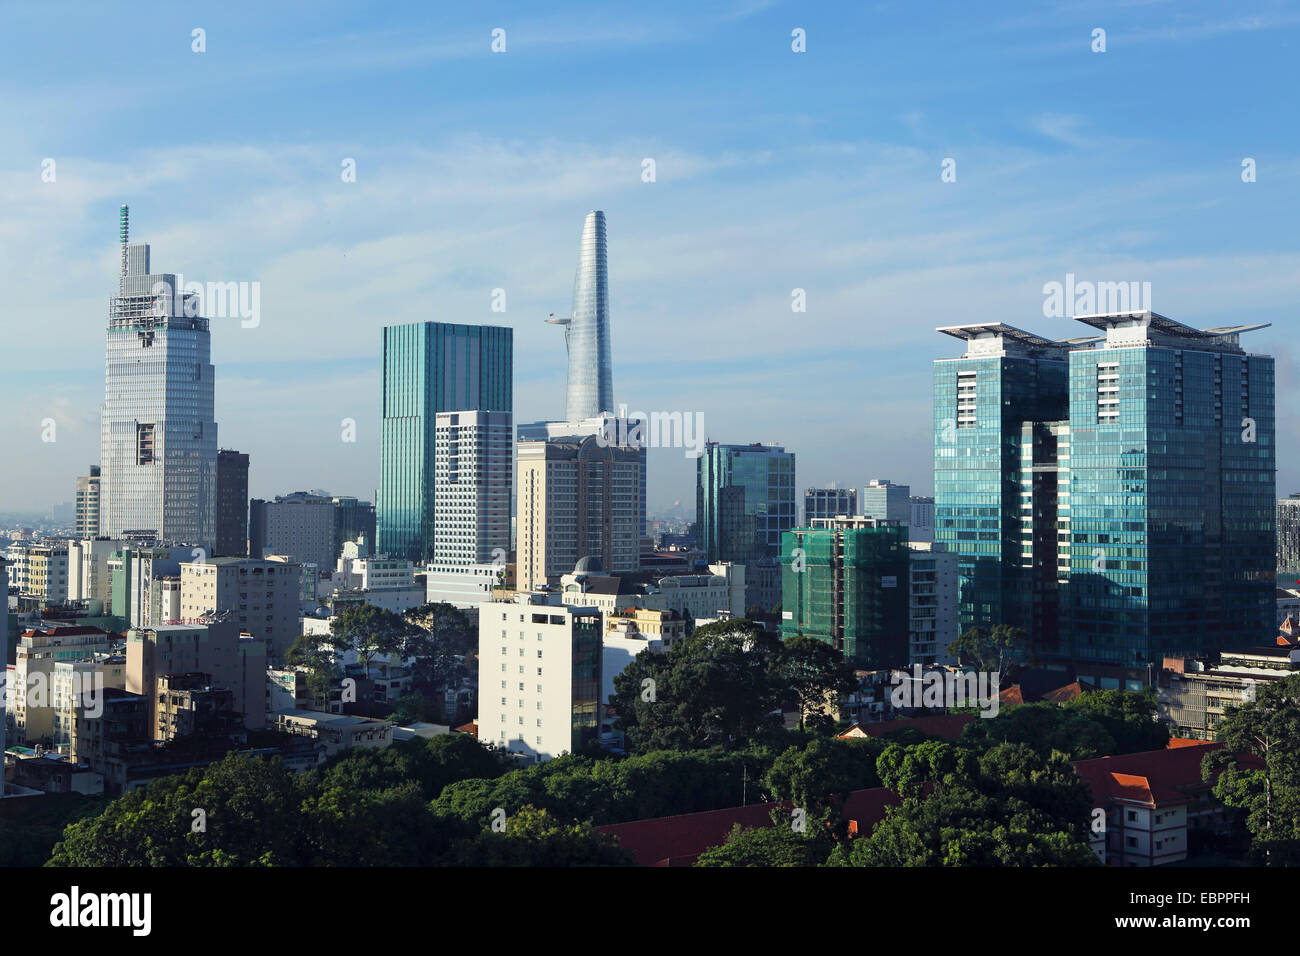 The skyline of the downtown area, including the Bitexco Tower, Ho Chi Minh City (Saigon), Vietnam, Indochina, Southeast - Stock Image